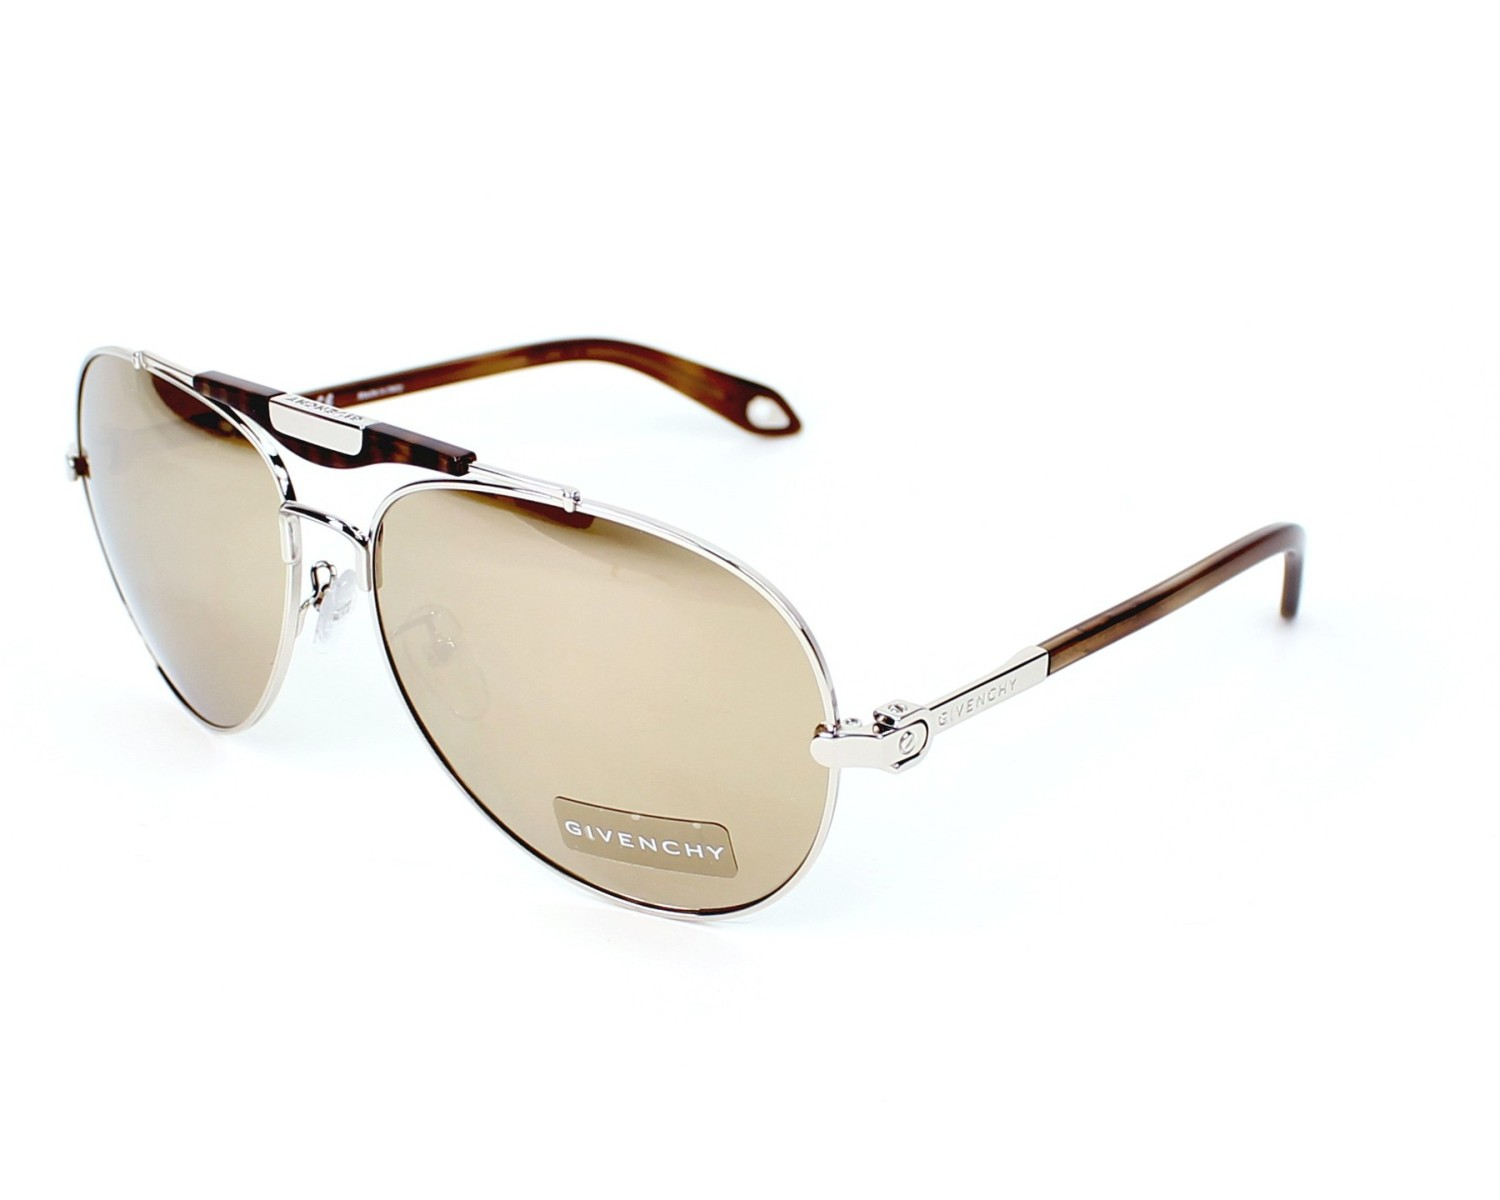 lunette givenchy solaire homme